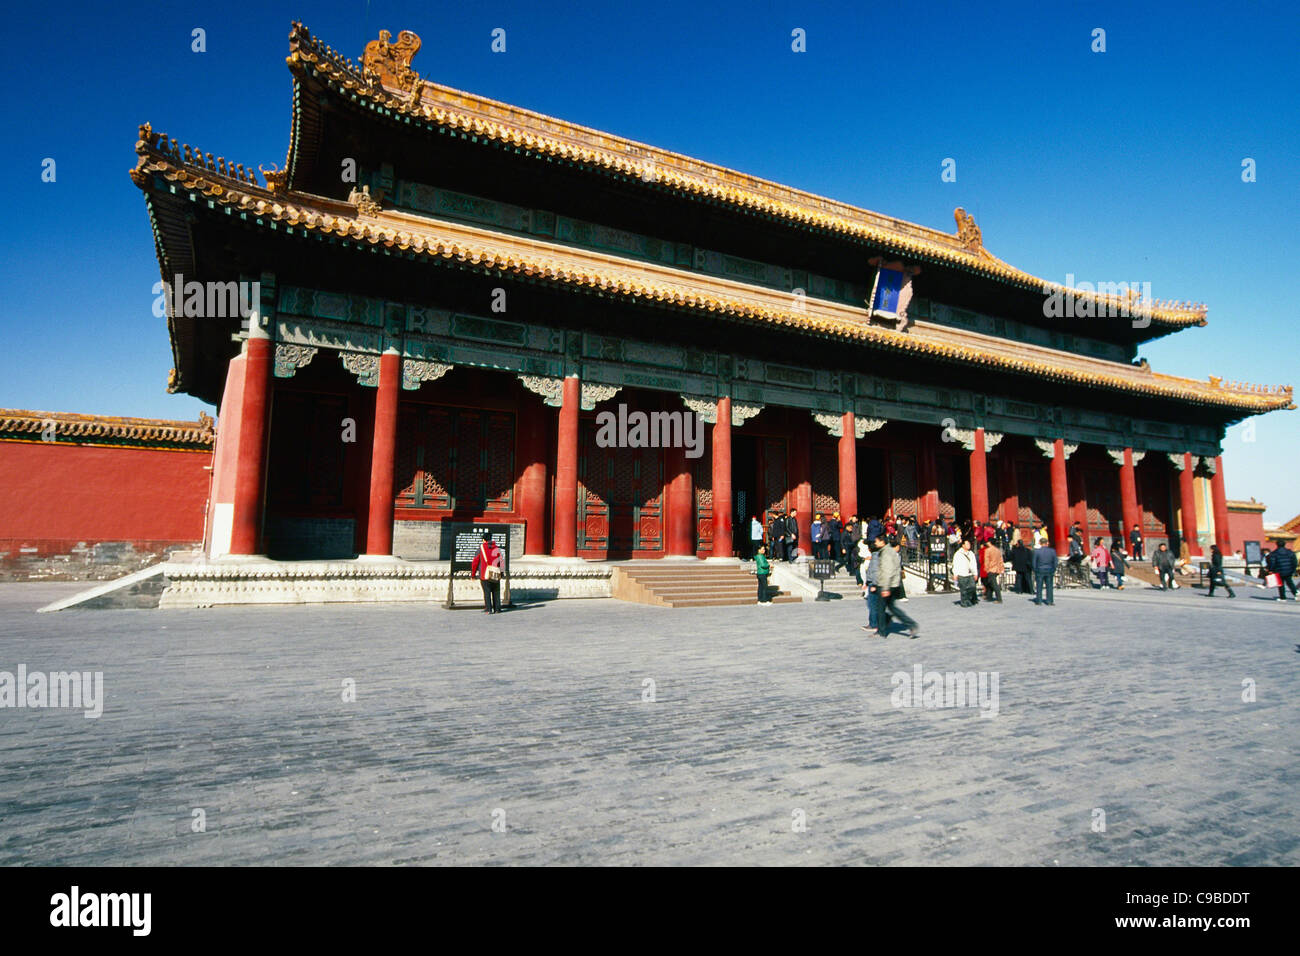 Low Angle View of the Palace of Preserved Harmony, Forbidden City, Beijing, China - Stock Image